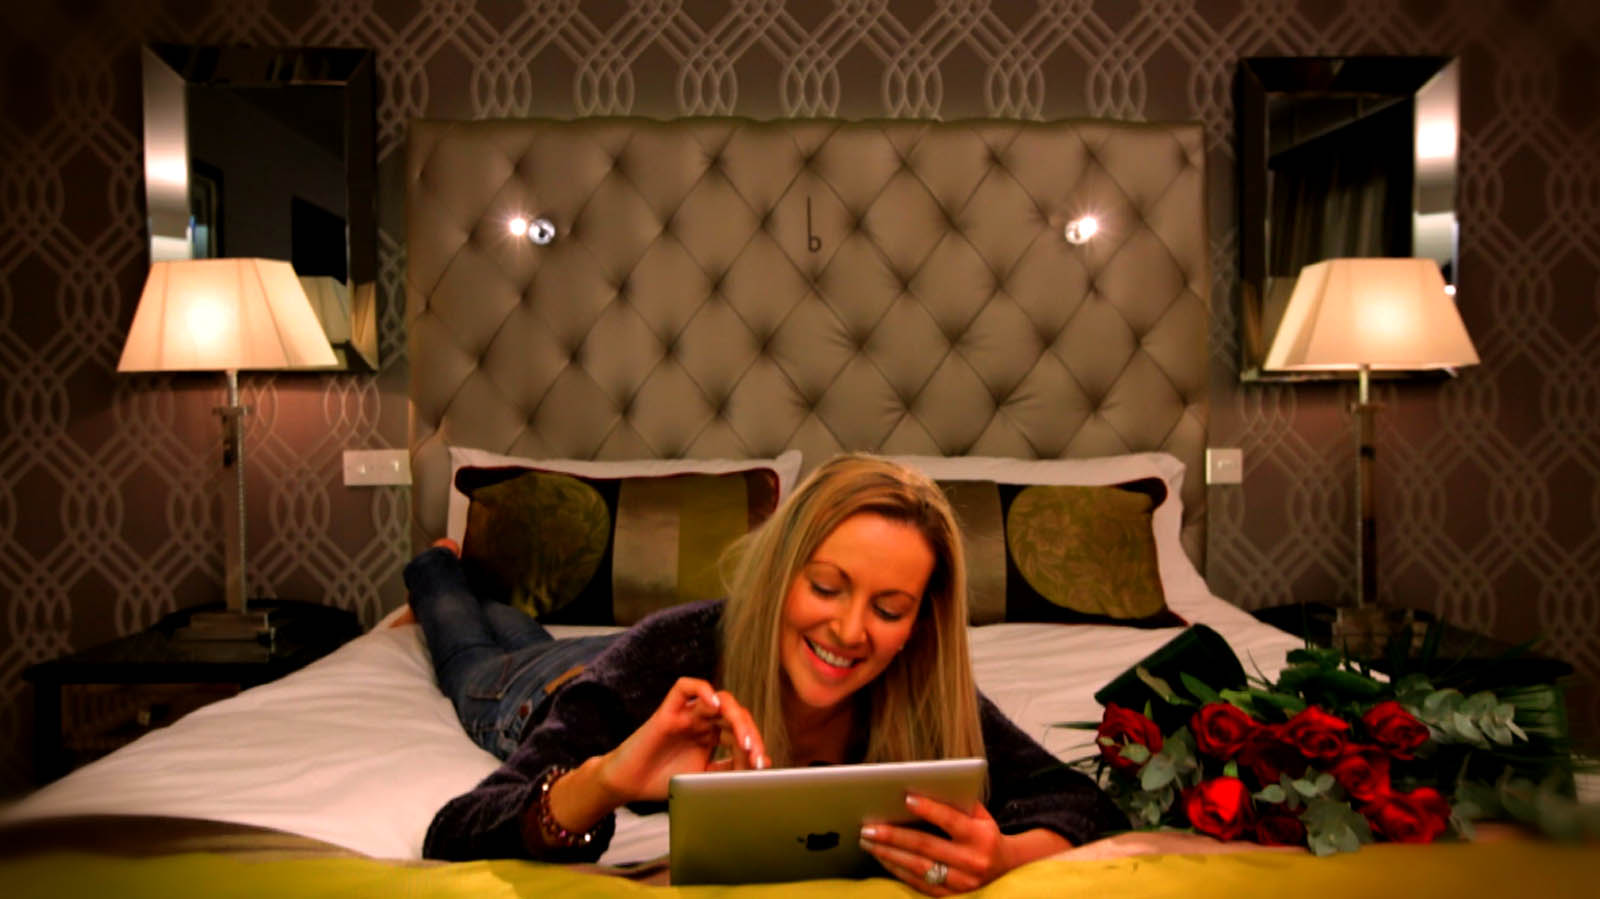 Cinema commercial for Benedicts of Belfast showing young woman in one of the hotel's bedroom suites - Bout Yeh video production Belfast, Northern Ireland